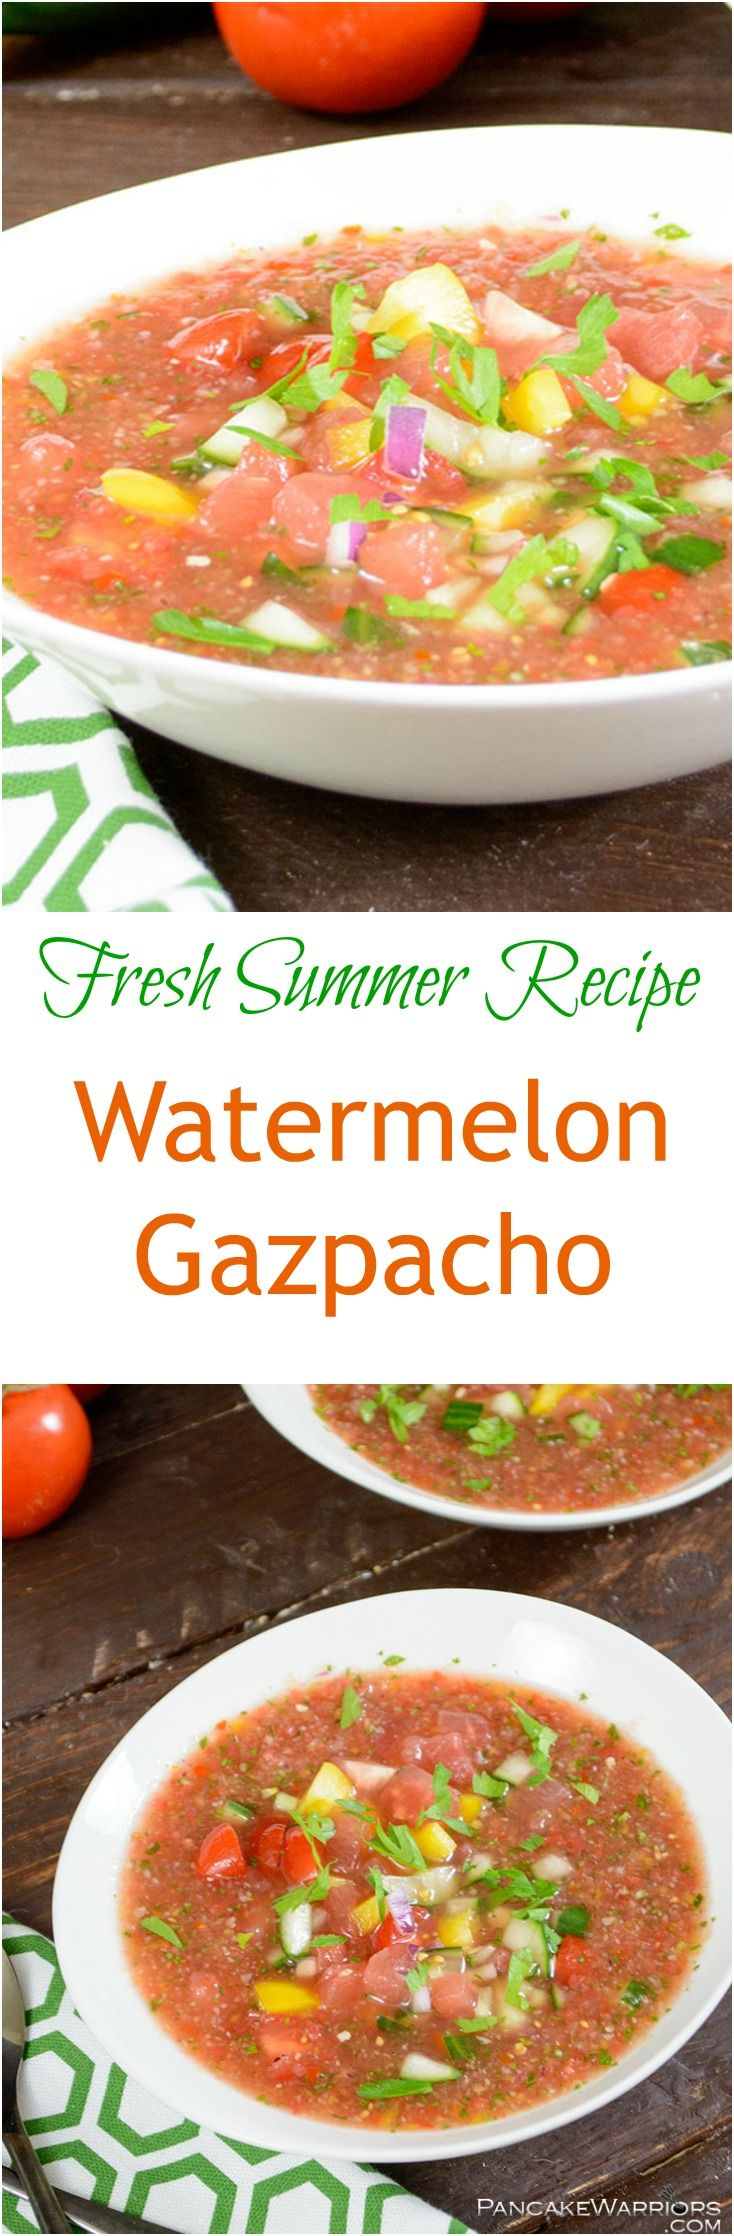 This easy watermelon gazpacho is a perfect summer soup! Packed with veggies and fruit, this low fat, gluten free, vegan recipe is sure to please a crowd.